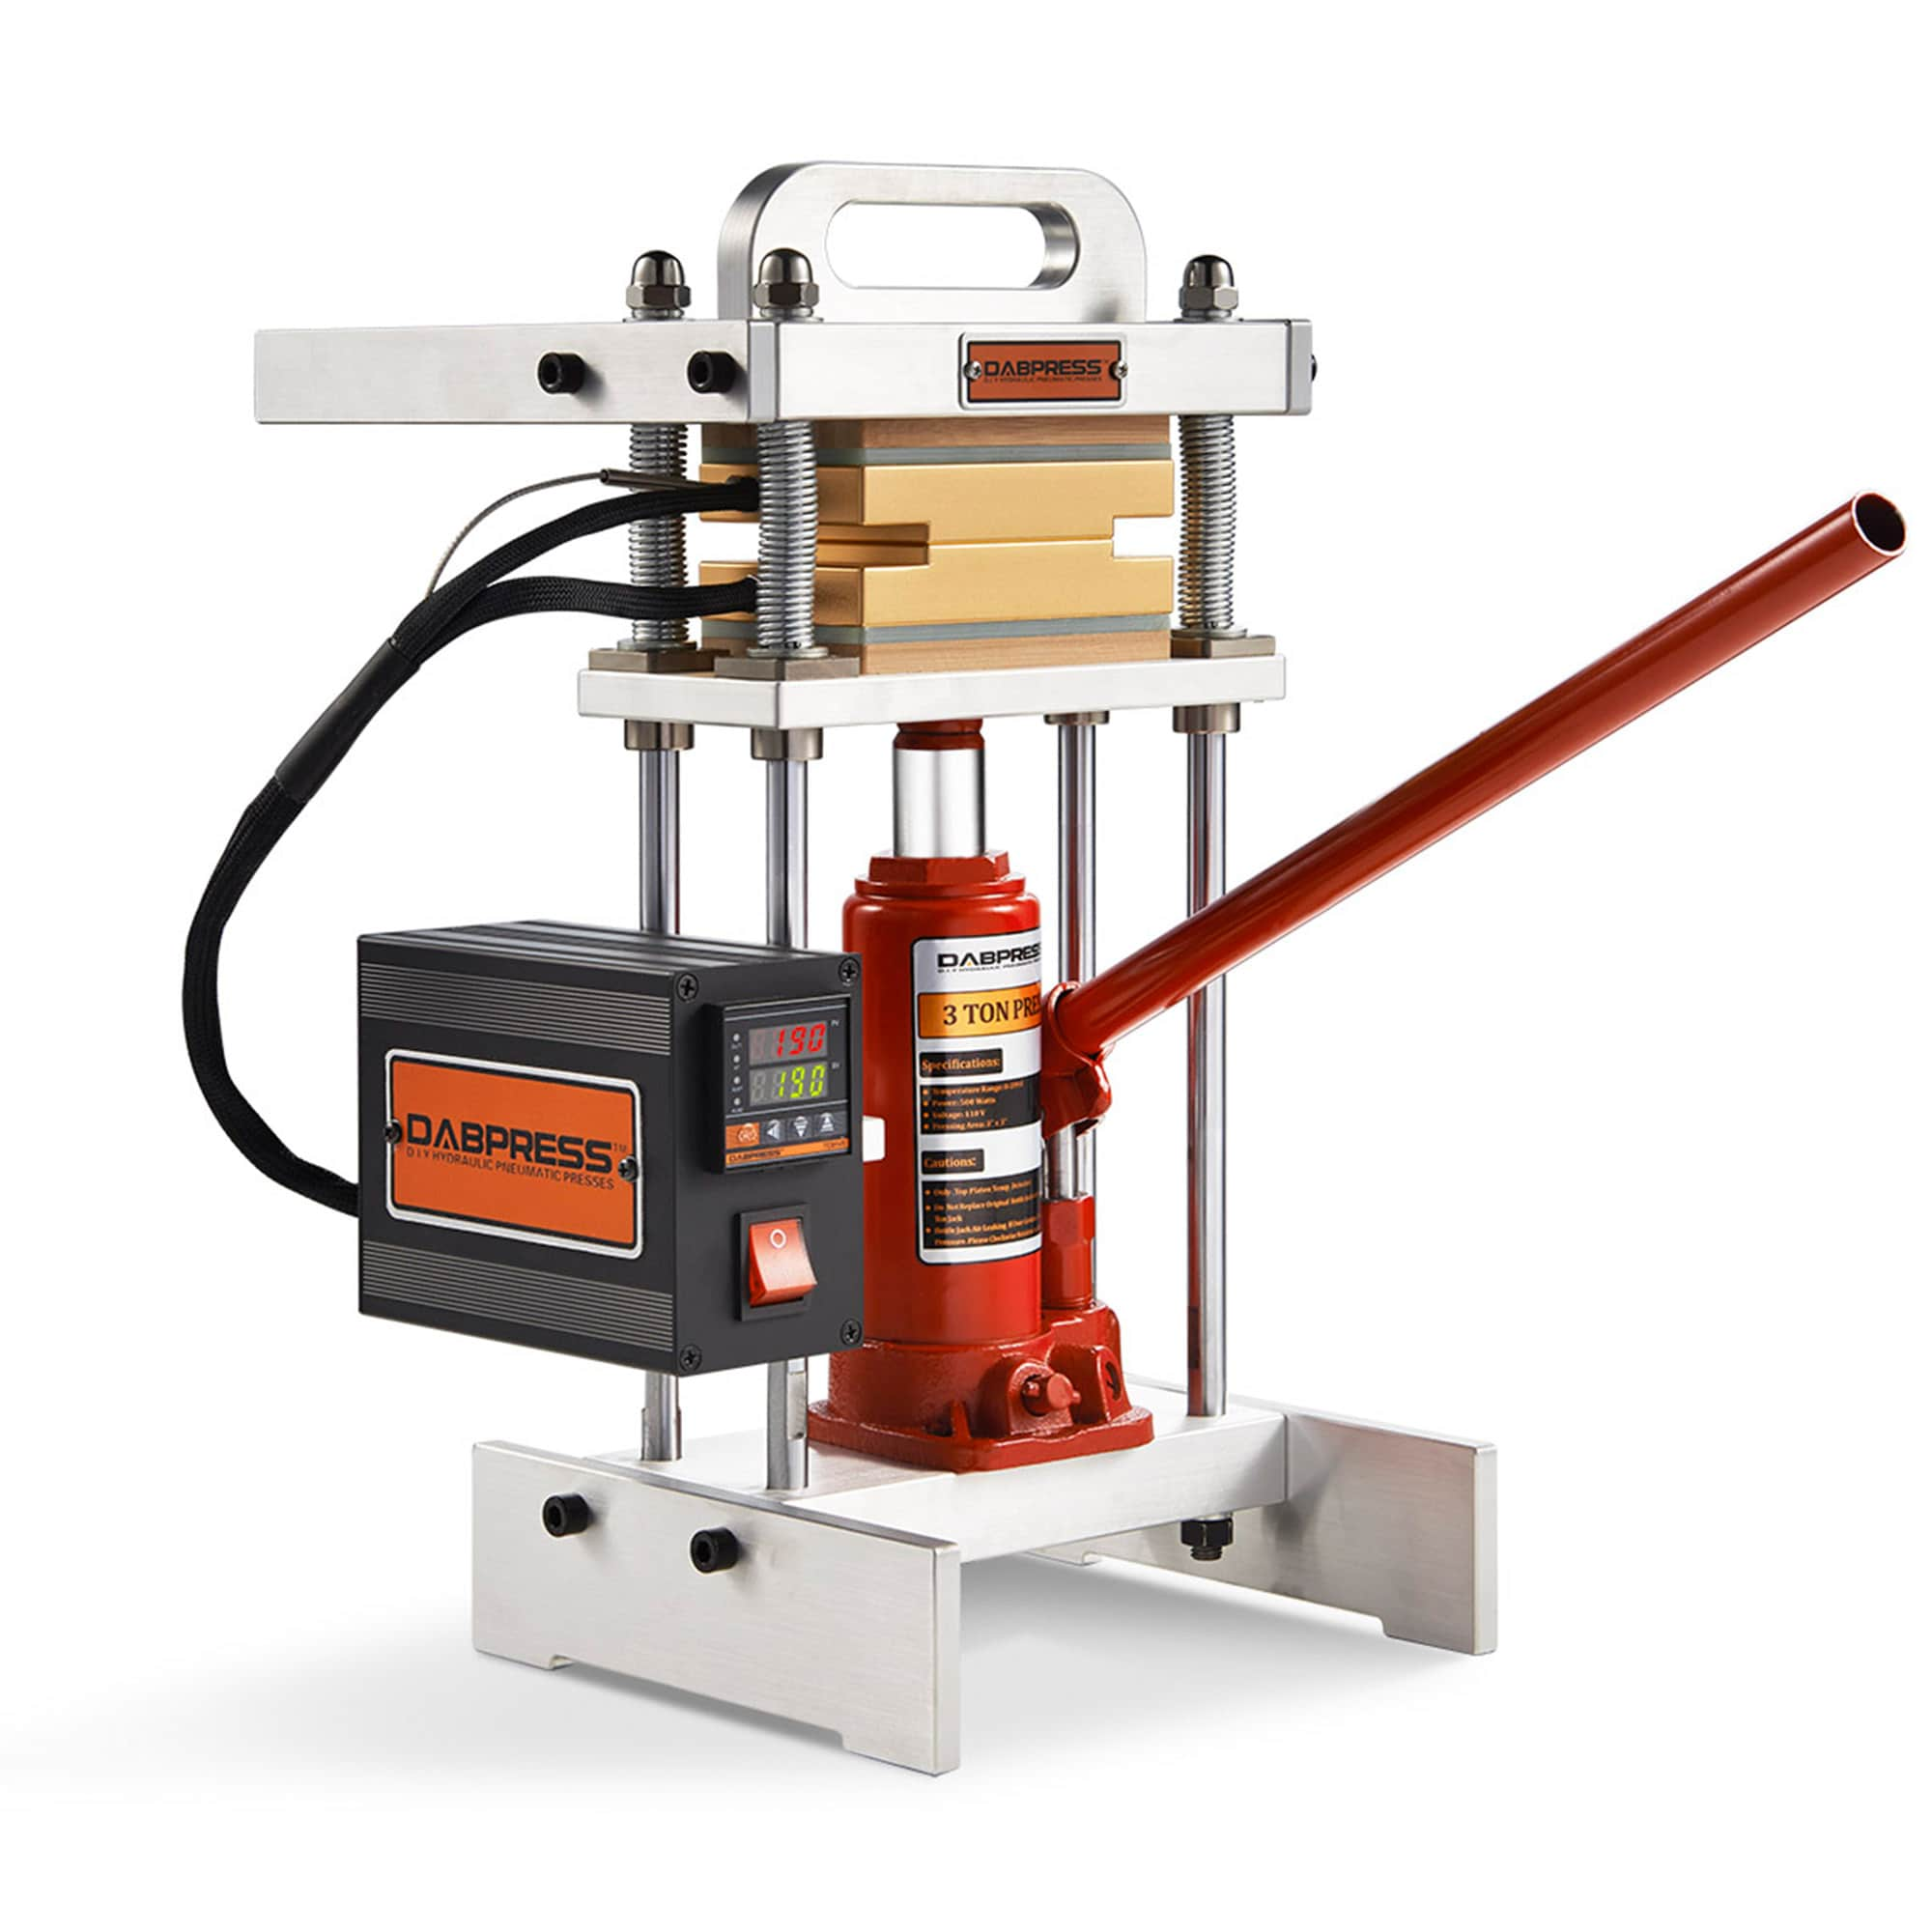 3-Ton Starter Rosin Press